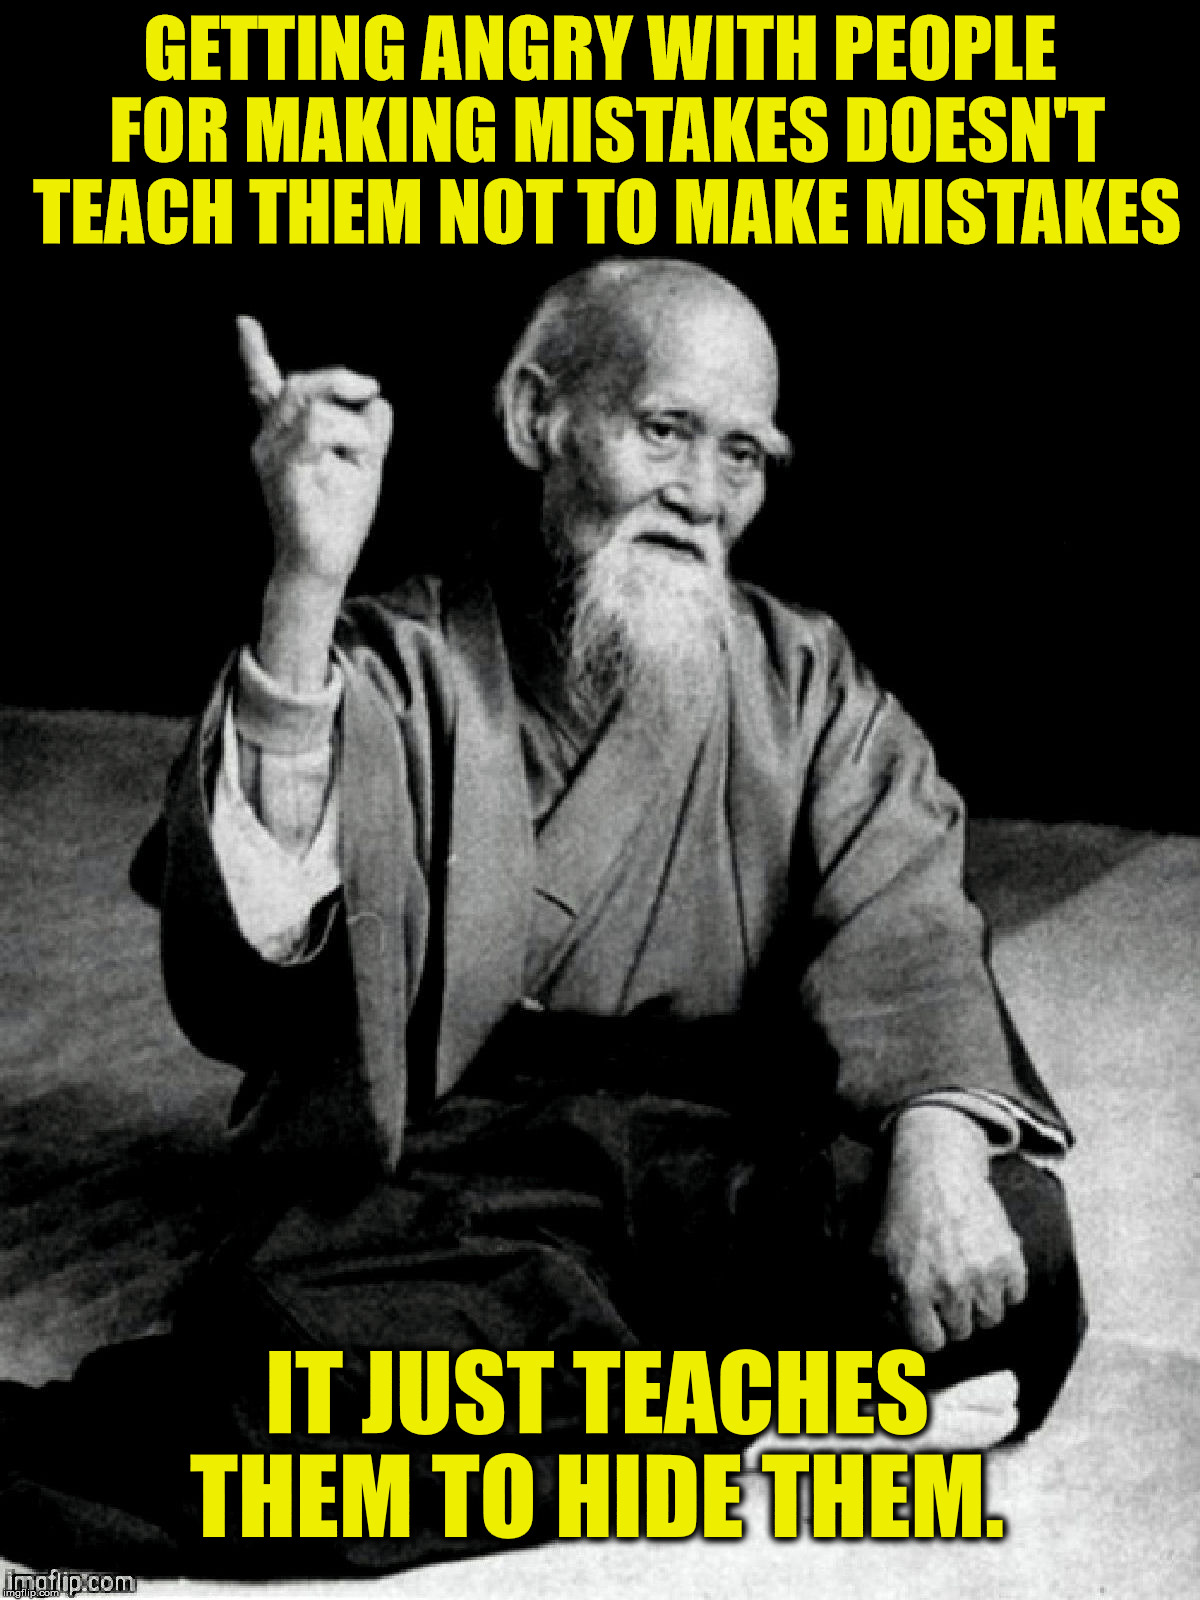 Monday wisdom to start your work week with | GETTING ANGRY WITH PEOPLE FOR MAKING MISTAKES DOESN'T TEACH THEM NOT TO MAKE MISTAKES IT JUST TEACHES THEM TO HIDE THEM. | image tagged in wisdom,mistakes,old chinese man | made w/ Imgflip meme maker